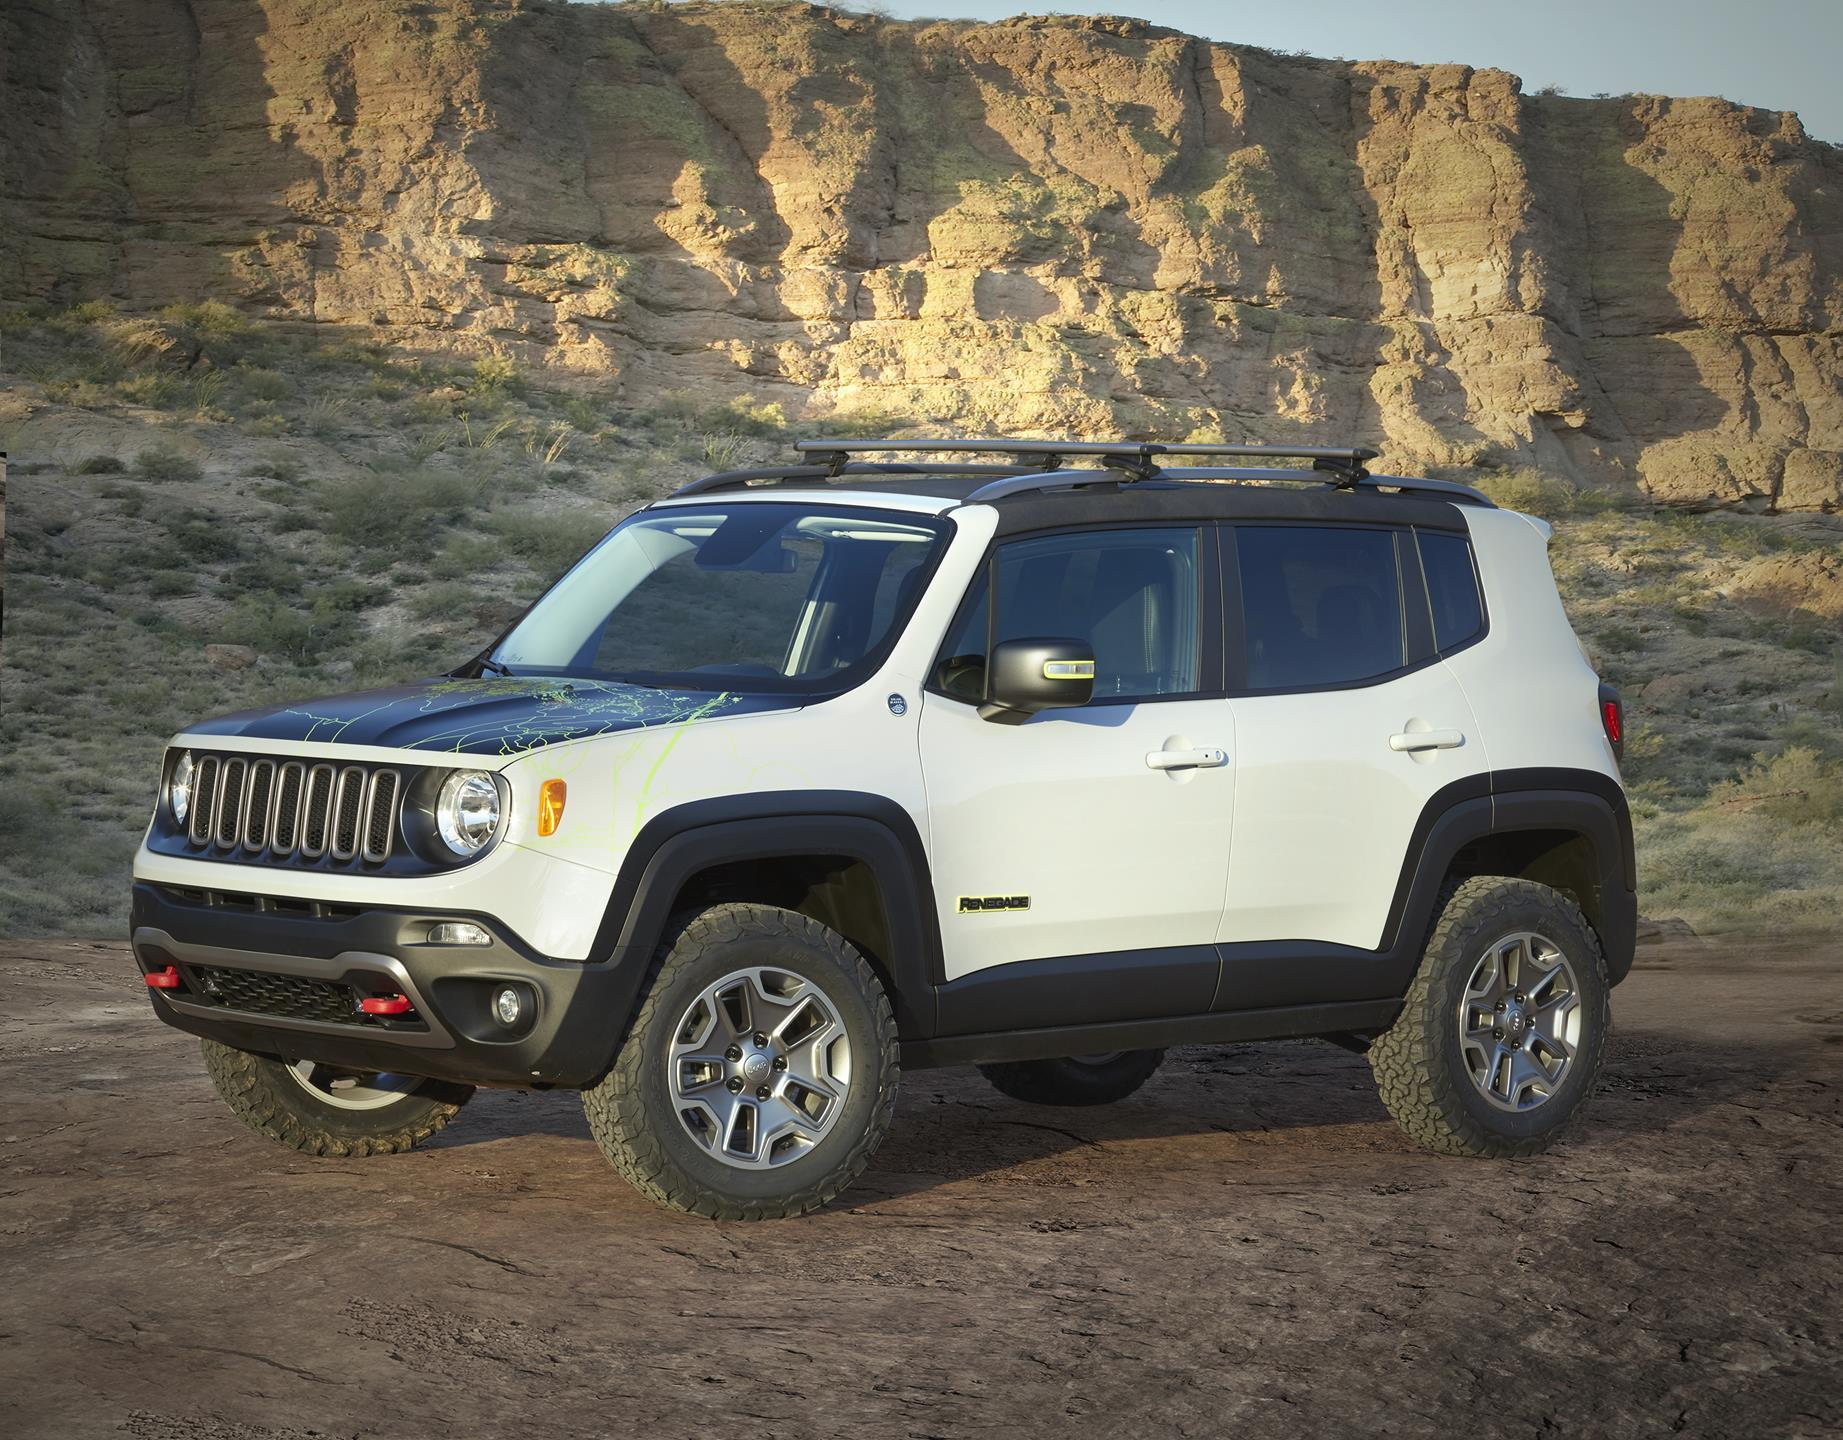 2016 Jeep Renegade Commander Concept News And Information